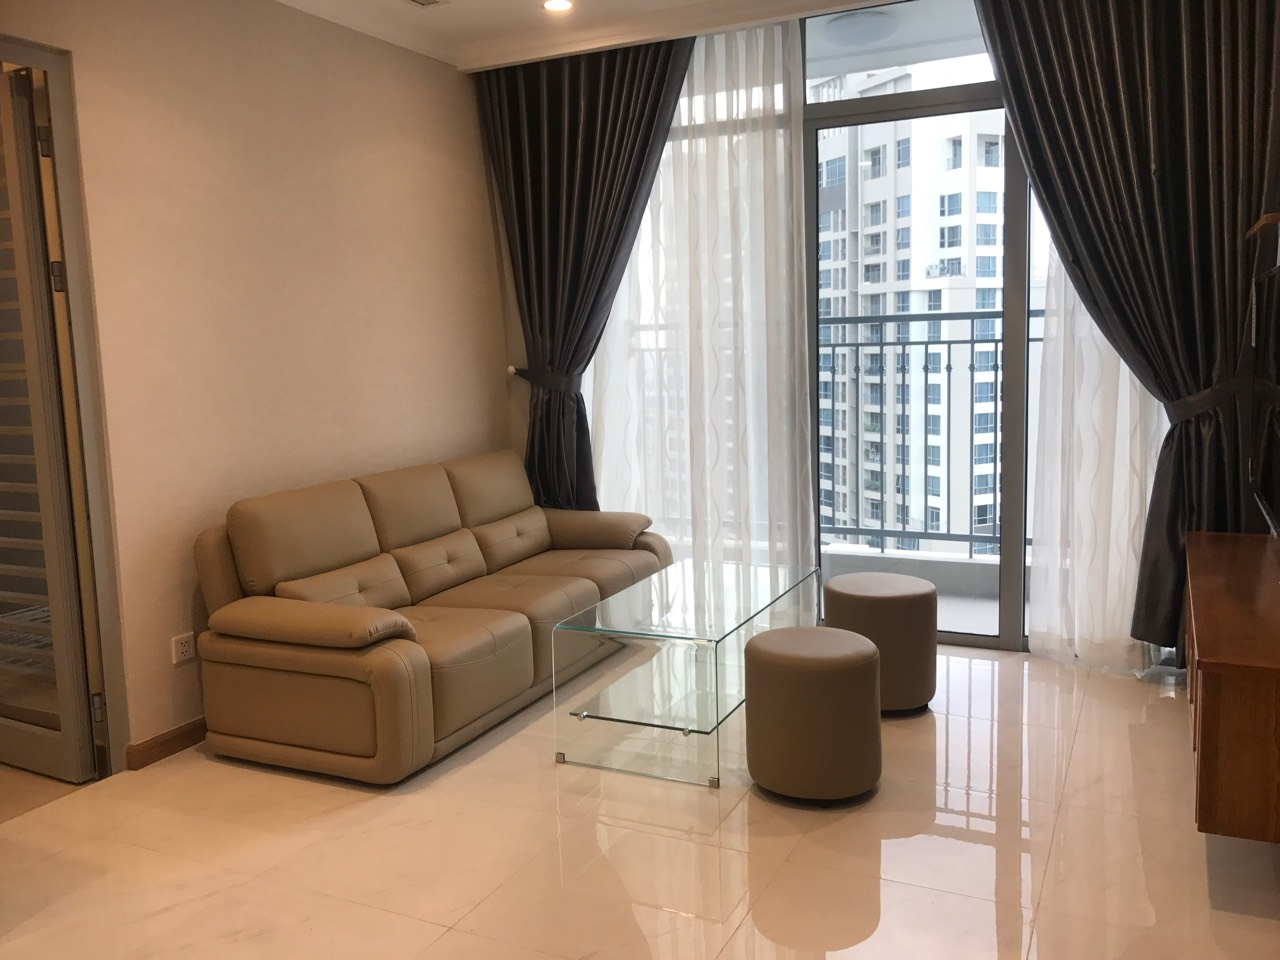 vinhomes central park apartment for rent in binh thanh district hcmc BT105L4410 (9)